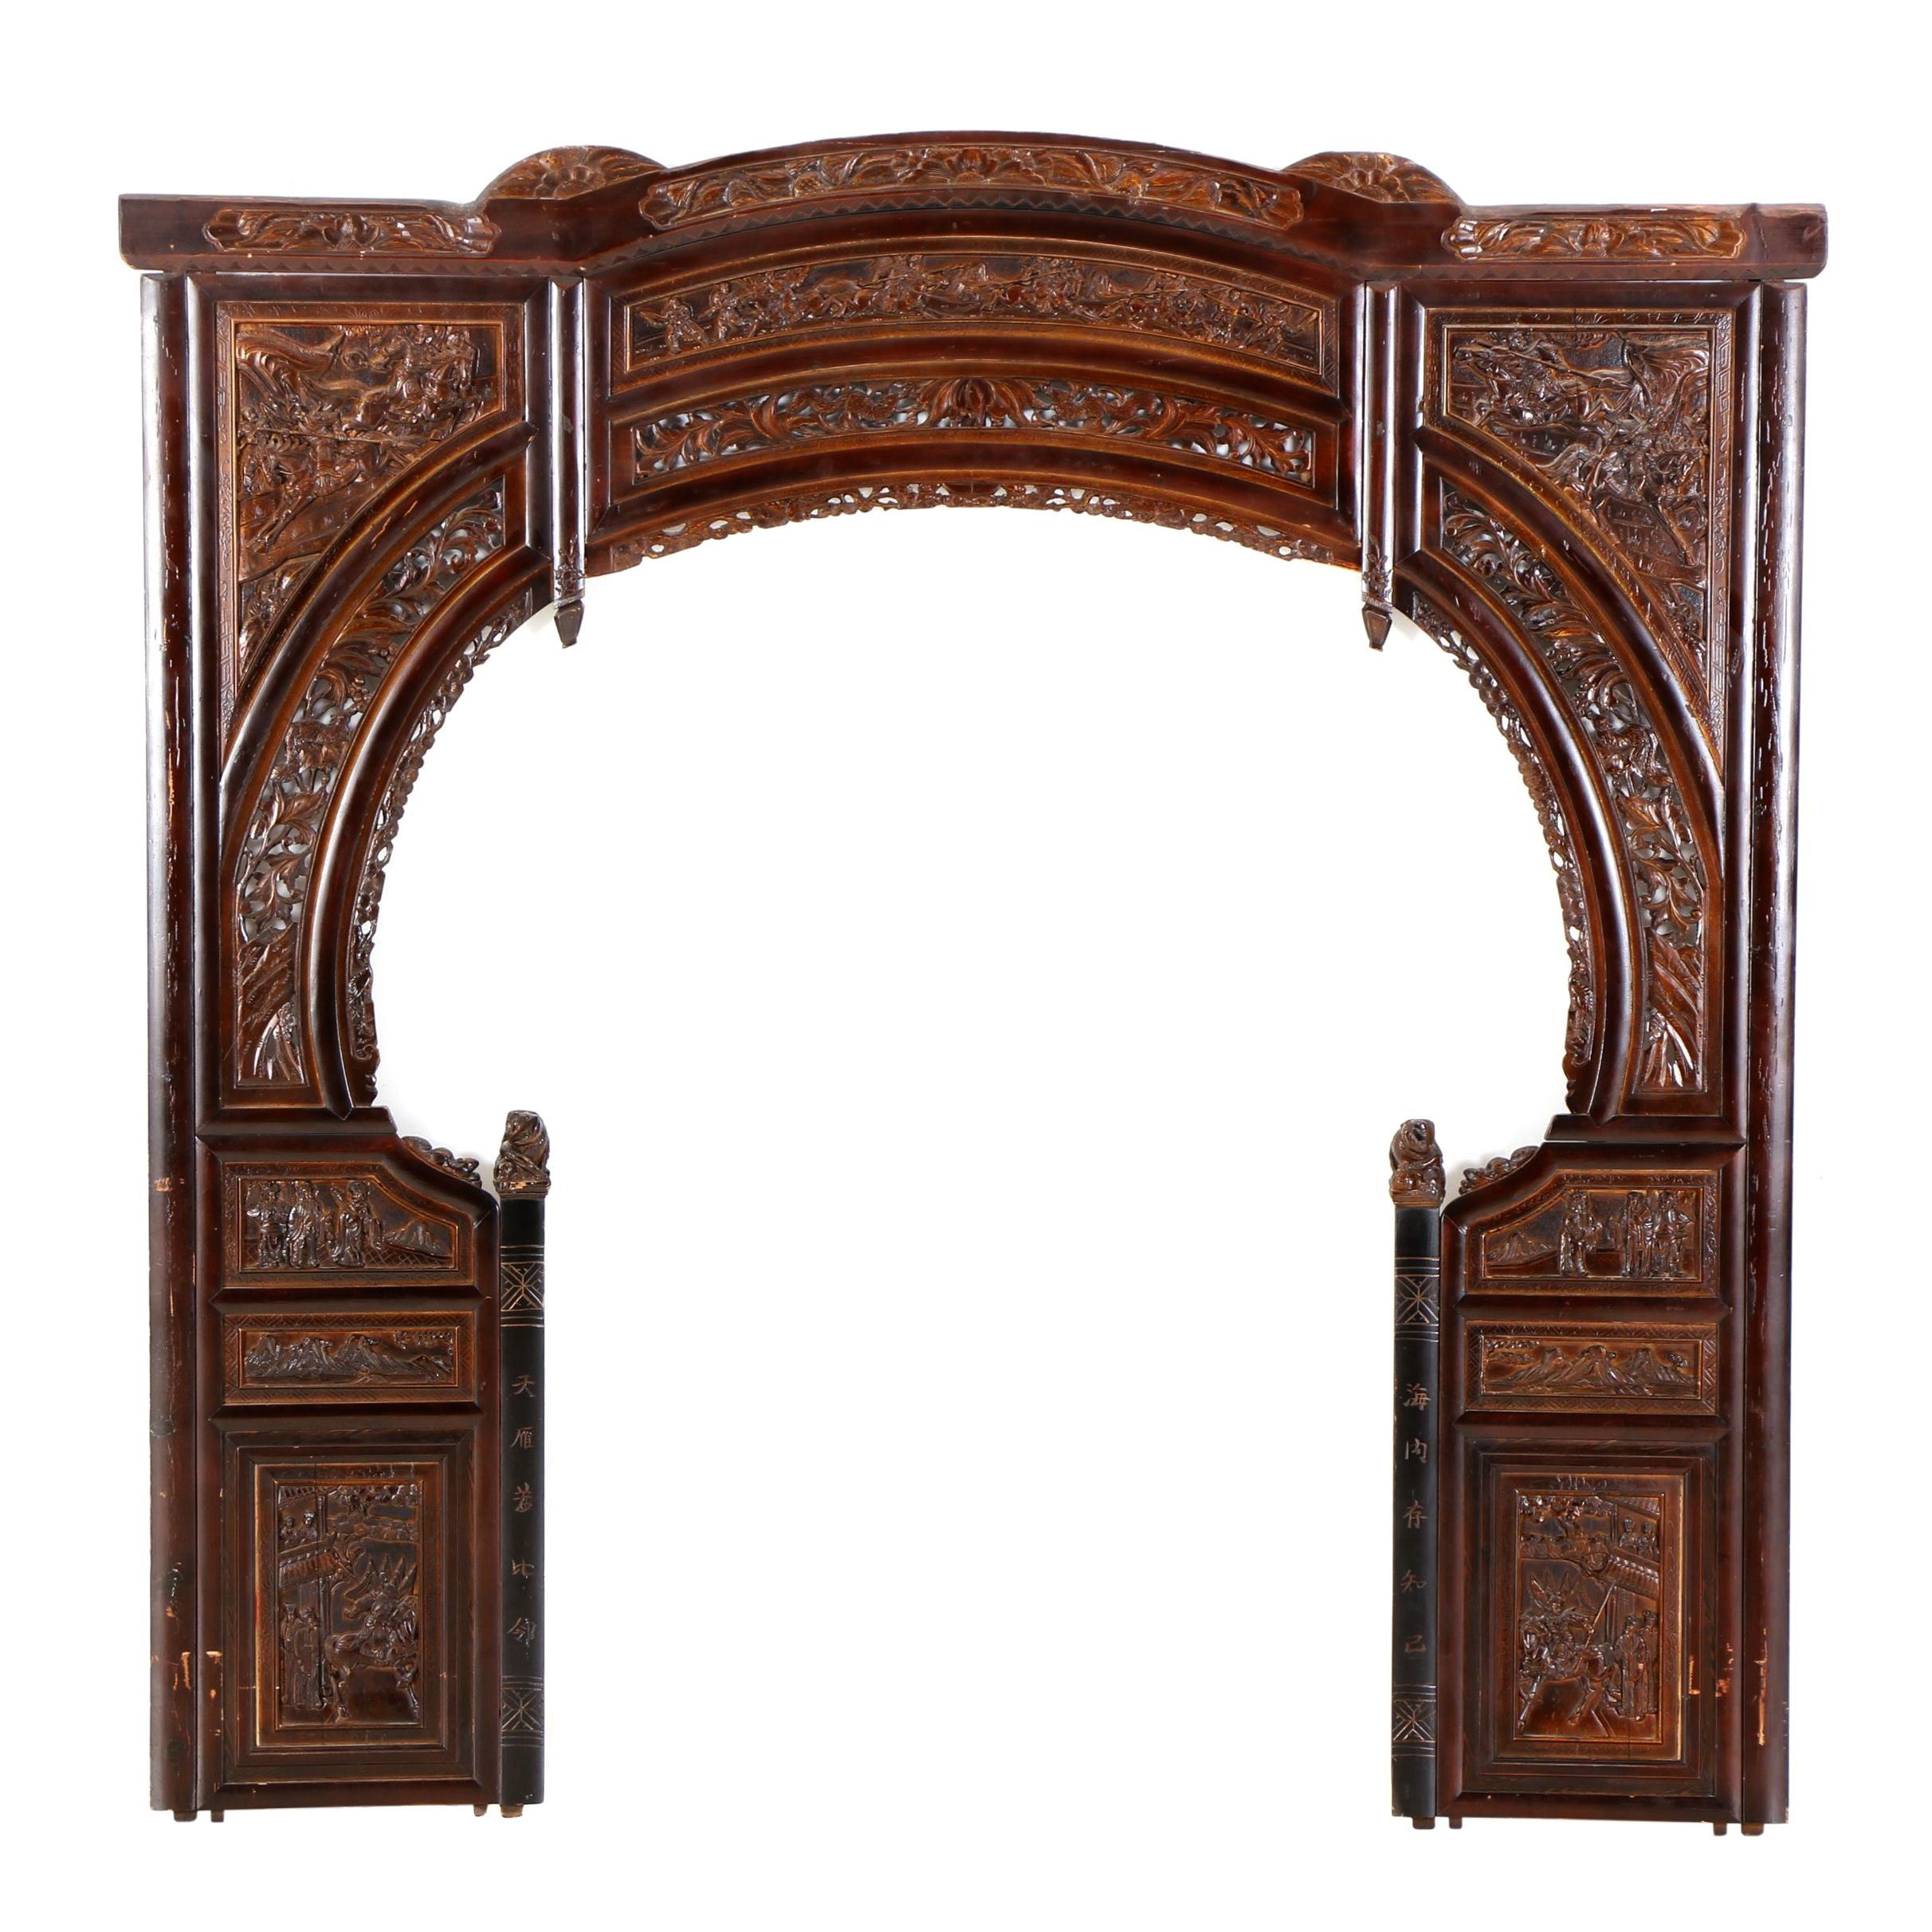 Chinese Carved Architectural Bed Surround